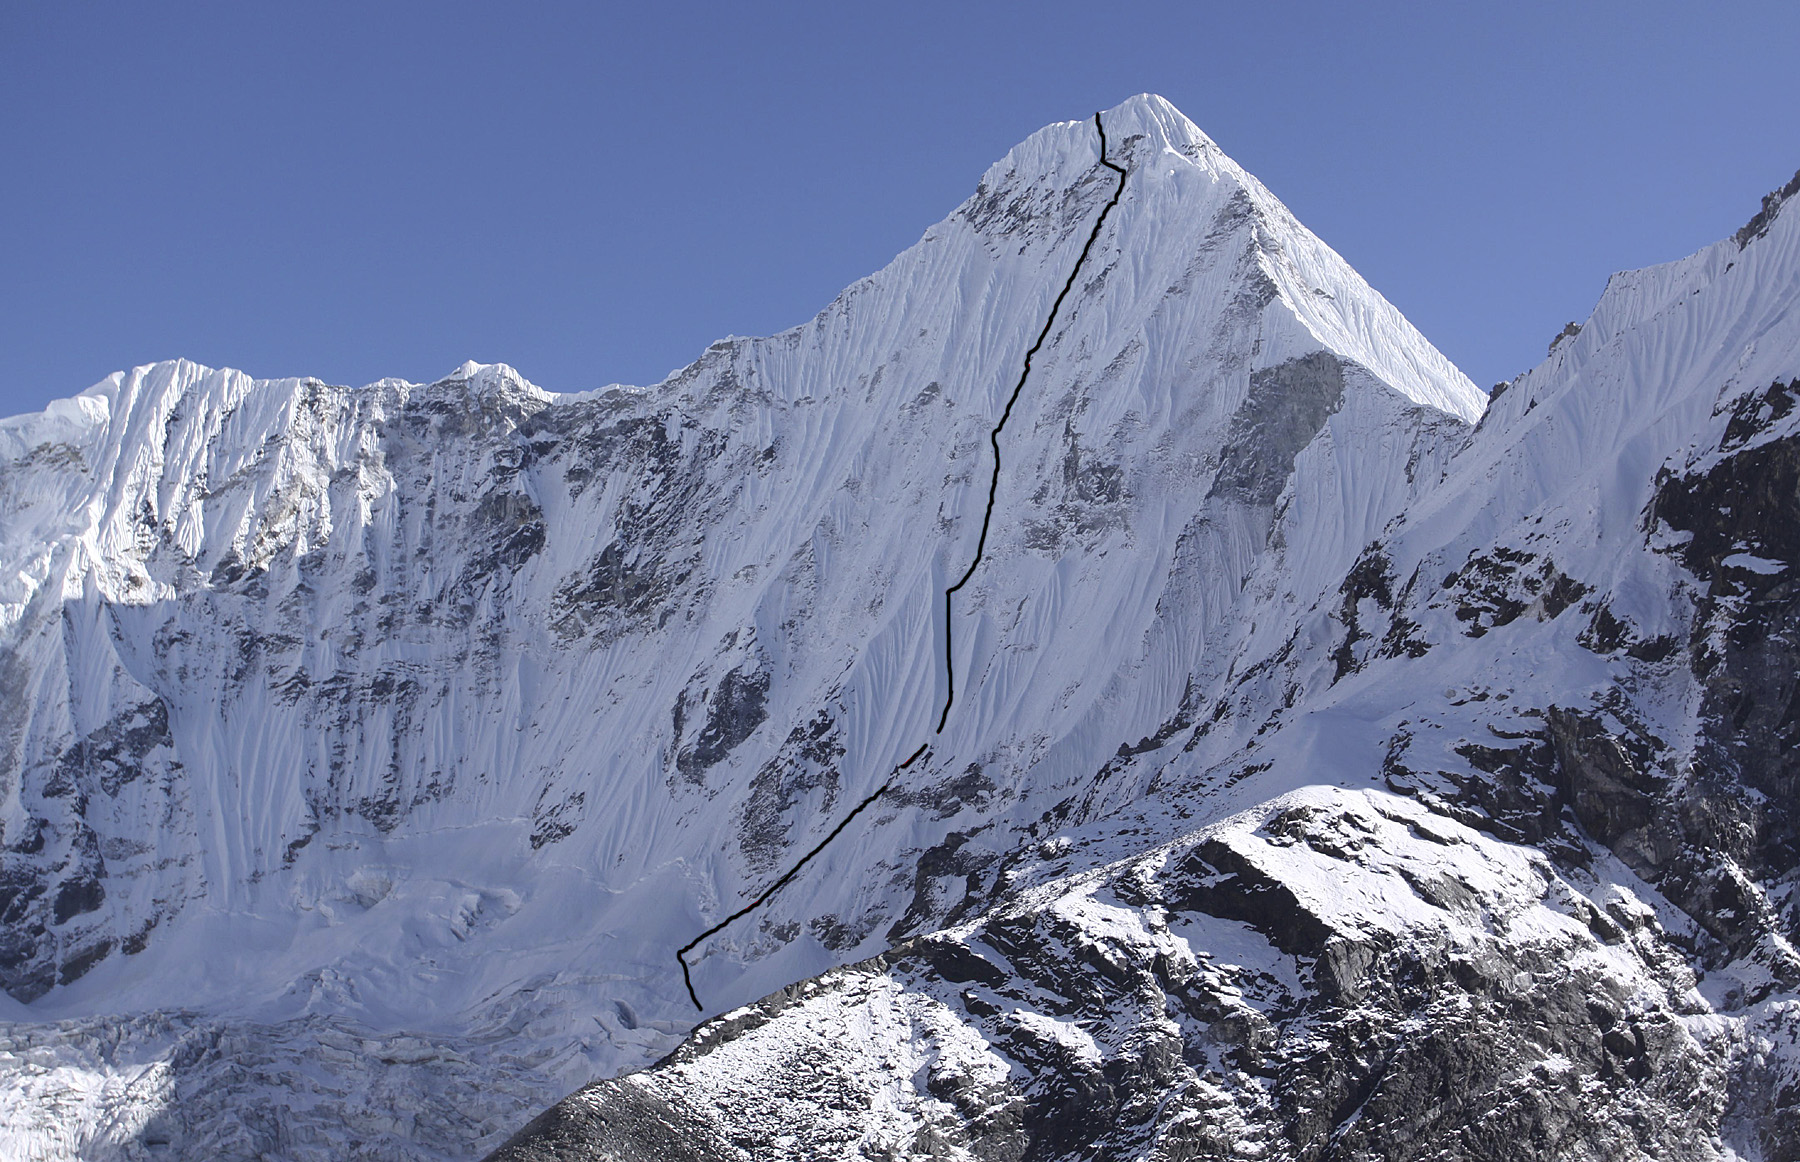 North face of Melanphulan with line of Polish ascent to northeast ridge, 100m from summit. The only previously recorded ascent of the peak, in 2000 by Supy Bullard and Peter Carse, climbed west face on right direct to summit.